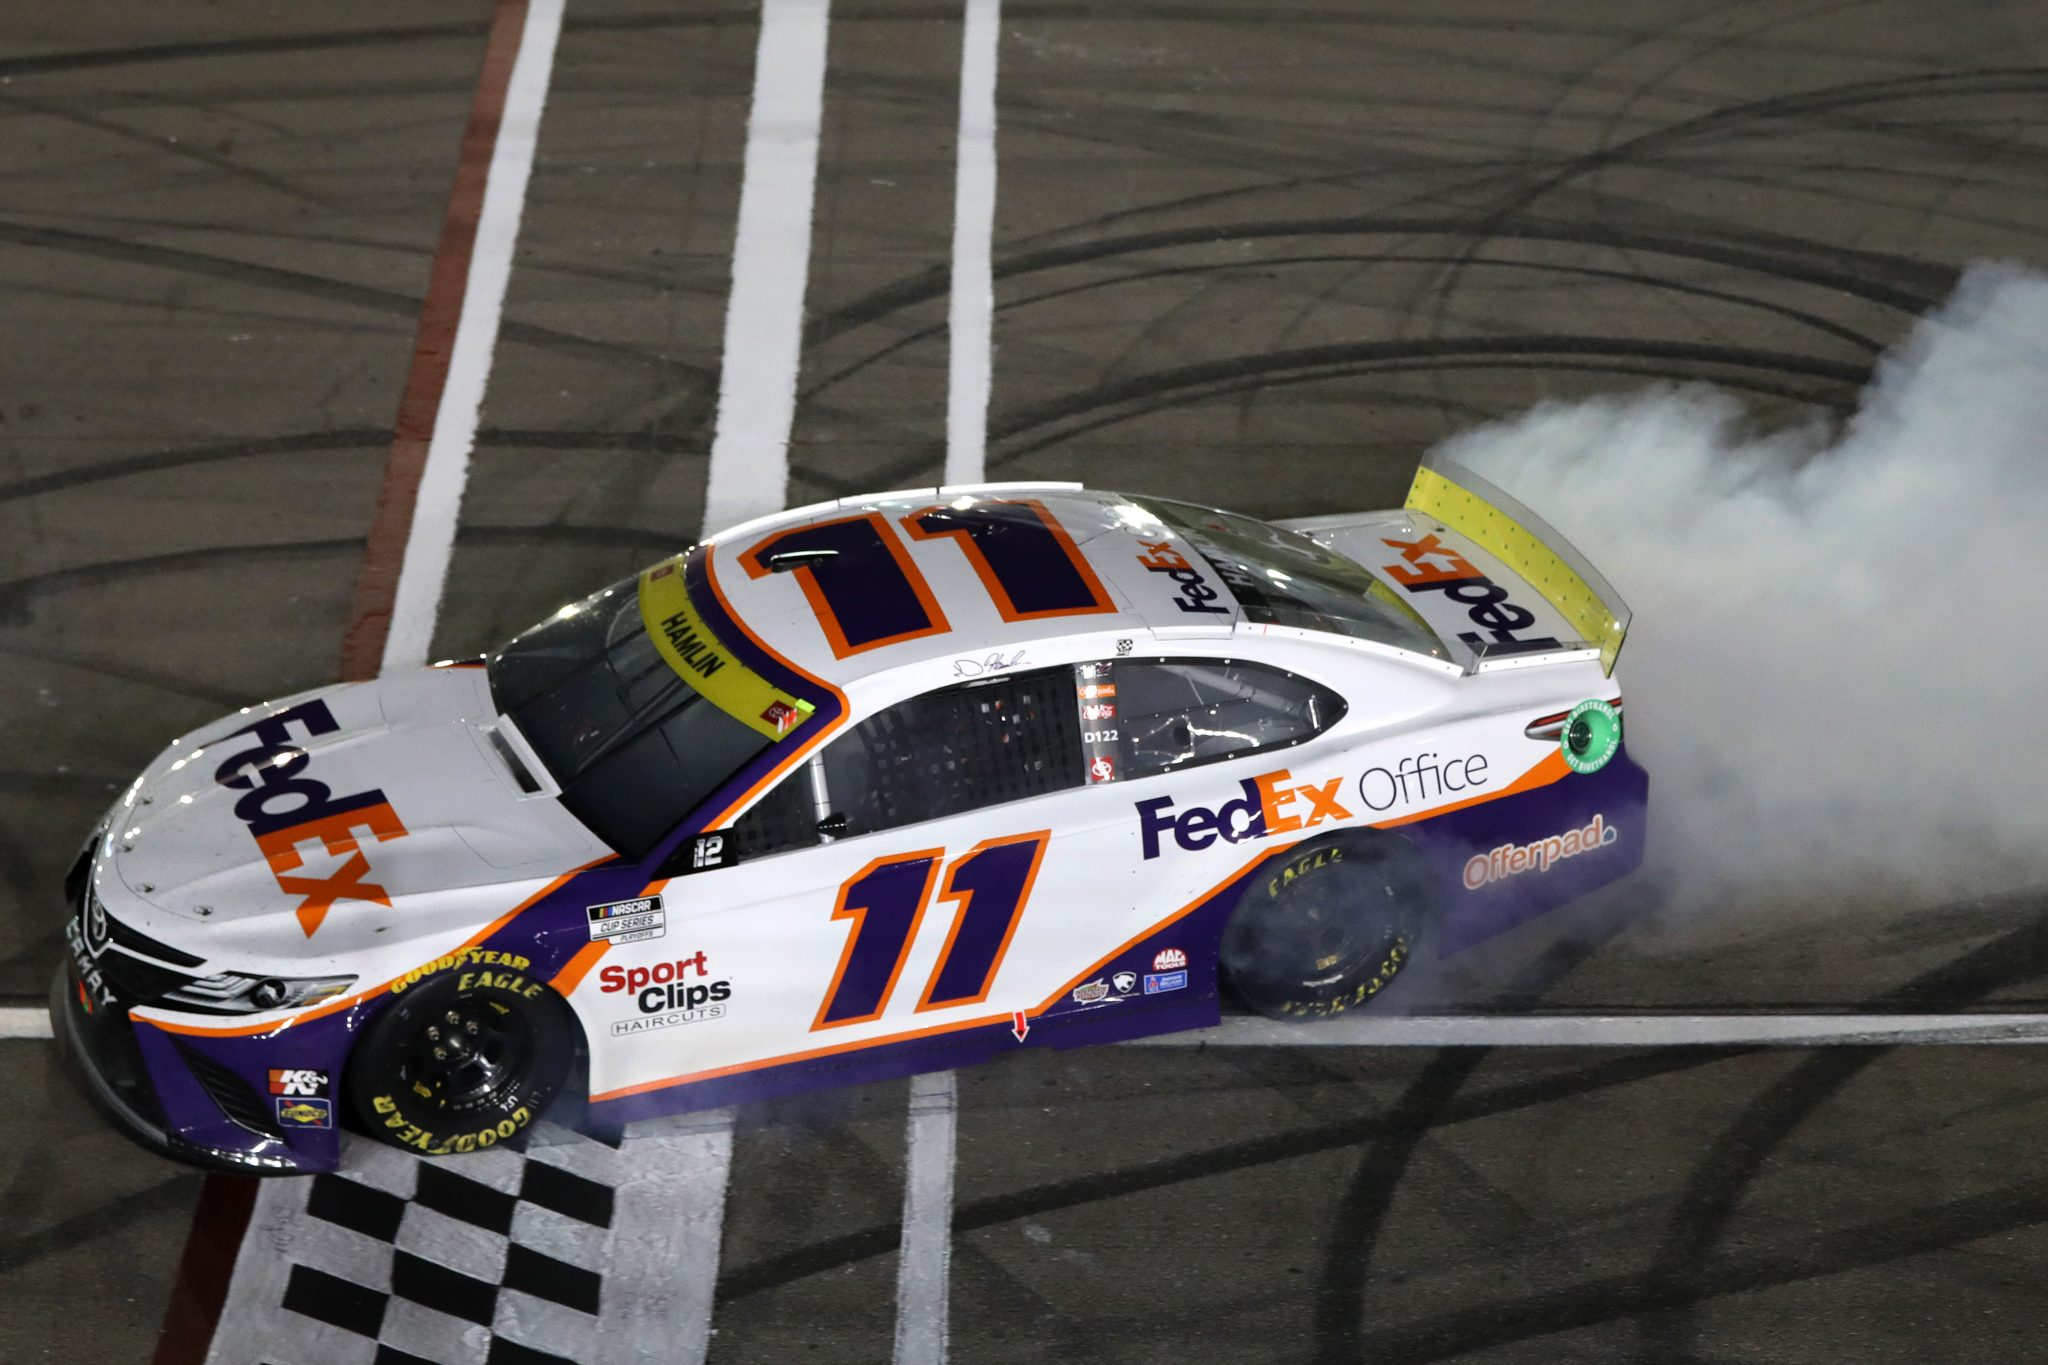 LAS VEGAS, NEVADA - SEPTEMBER 26: Denny Hamlin, driver of the #11 FedEx Office Toyota, celebrates with a burnout after winning the NASCAR Cup Series South Point 400 at Las Vegas Motor Speedway on September 26, 2021 in Las Vegas, Nevada. (Photo by Meg Oliphant/Getty Images)   Getty Images